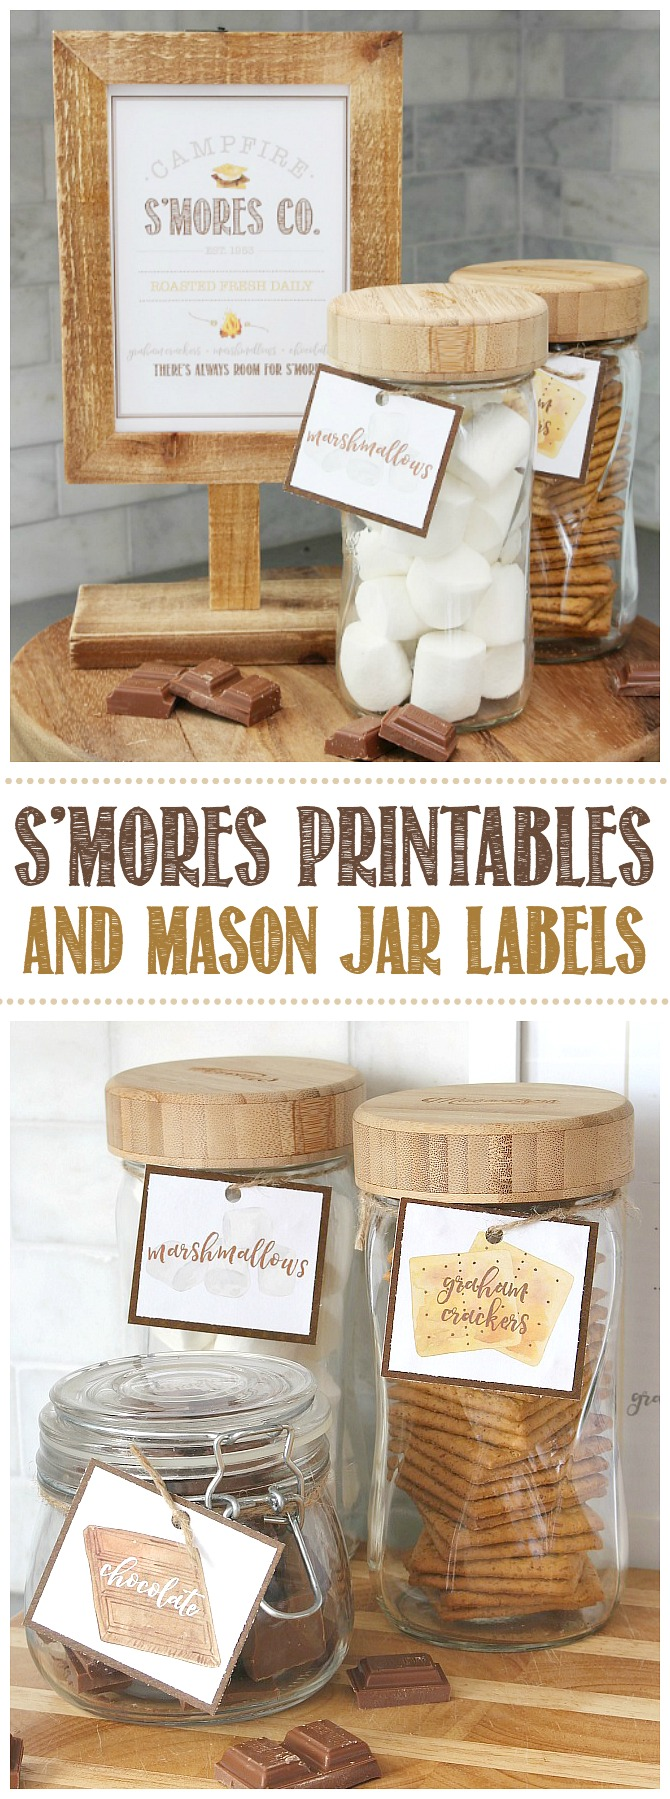 Campfire S'mores Printable in a wooden frame with s'mores ingredients in labeled mason jars.